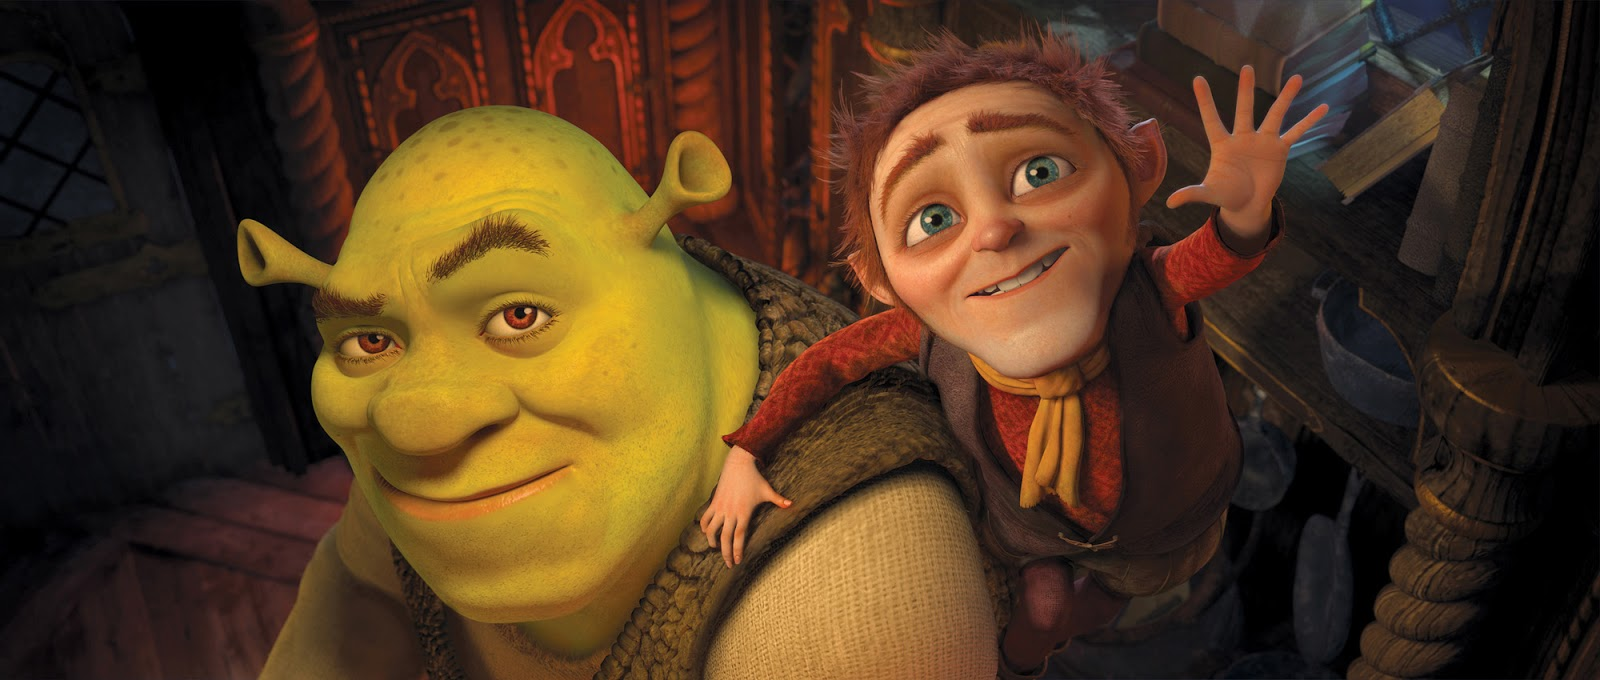 Shrek Rumpelstiltskin Shrek Forever After 2010 animatedfilmreviews.filminspector.com